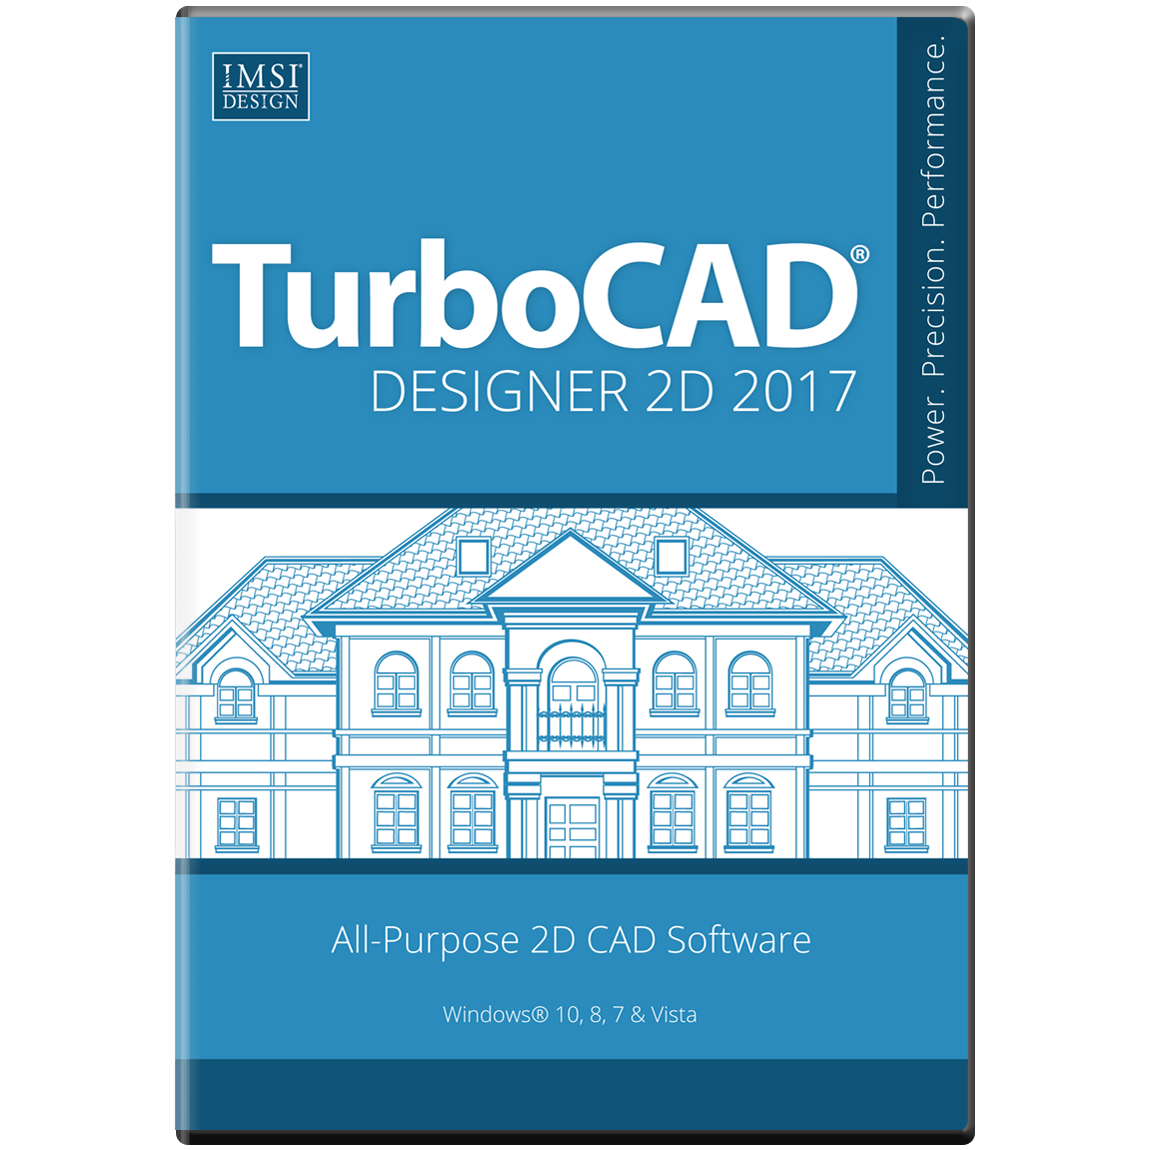 amazon com turbocad designer 2017 download software